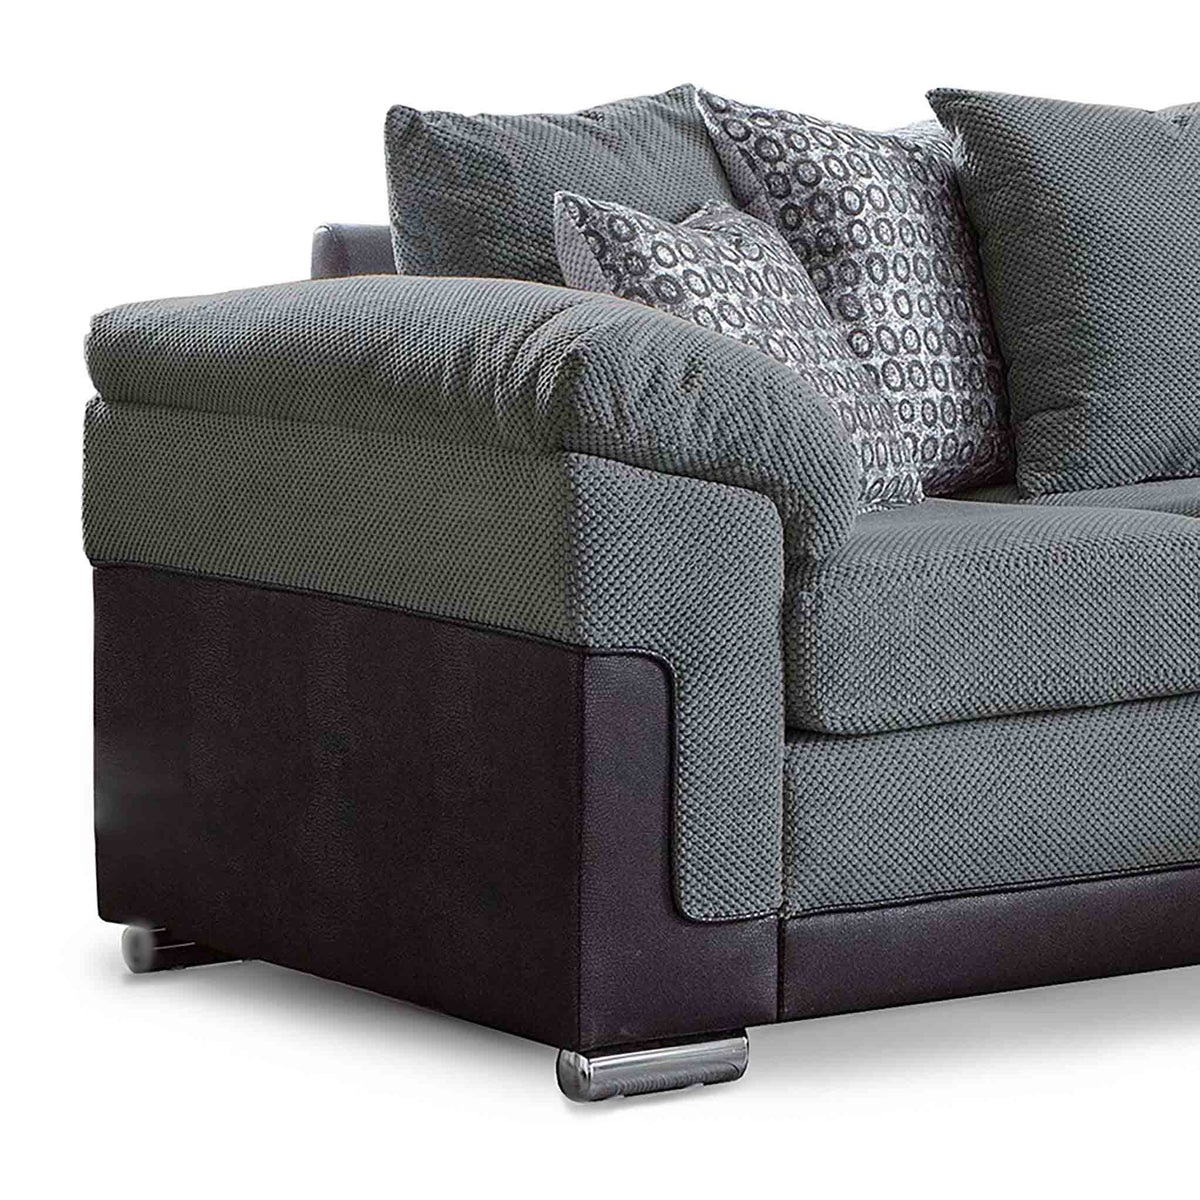 Ameba Charcoal Reversible Corner Chaise Sofa - Close up of side